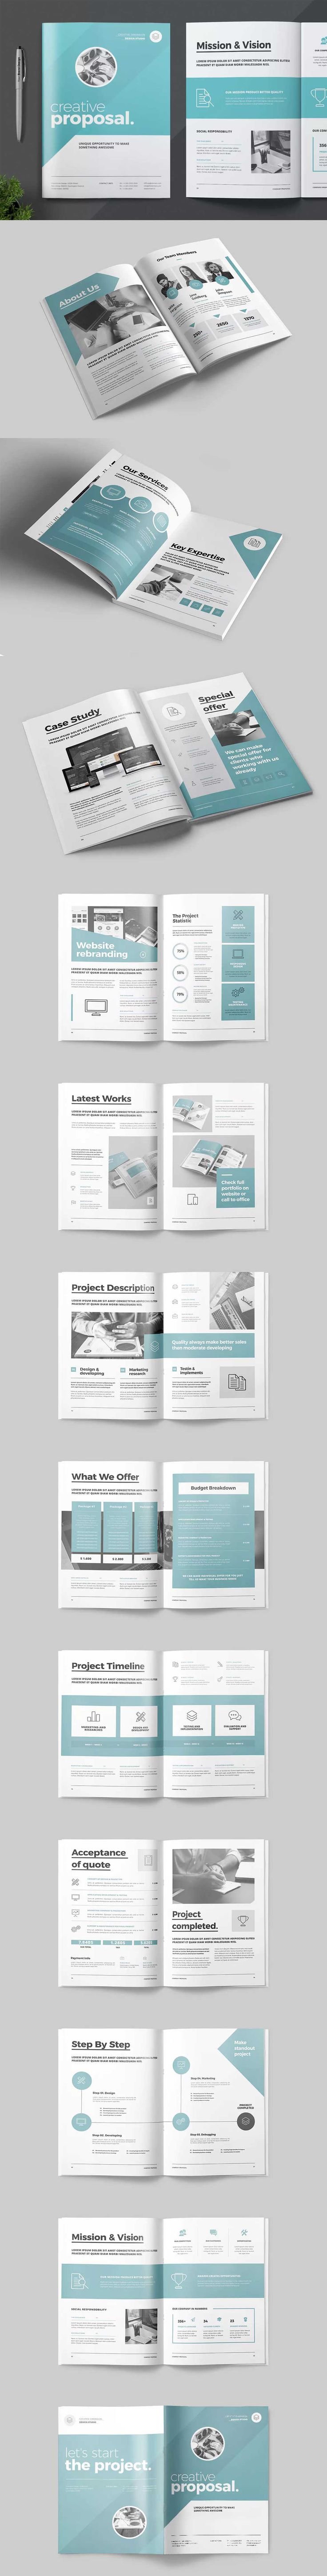 construction proposal templates%0A Proposal Template InDesign INDD A  and Us Letter Size